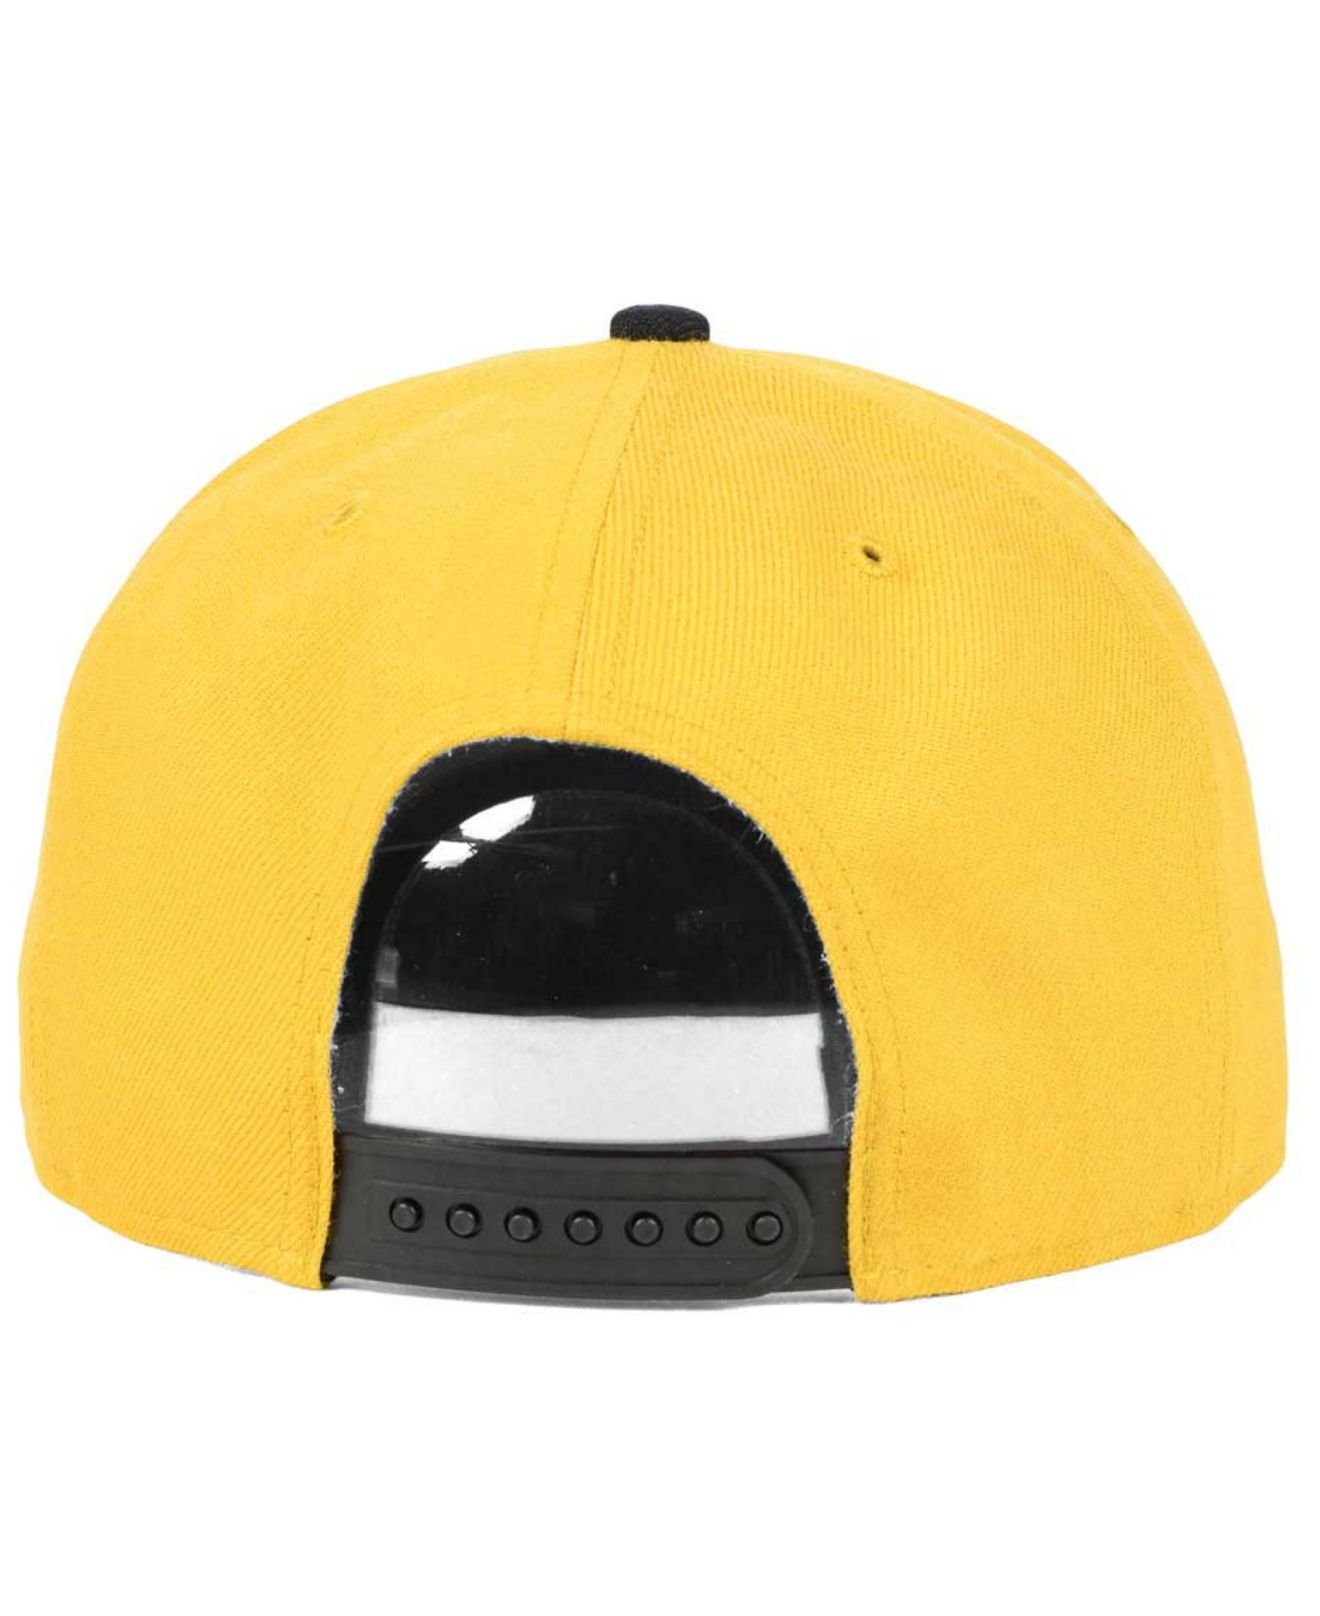 best website 9ebdd 175f7 ... new style lyst 47 brand ucf knights sure shot snapback cap in yellow  for men fd31a